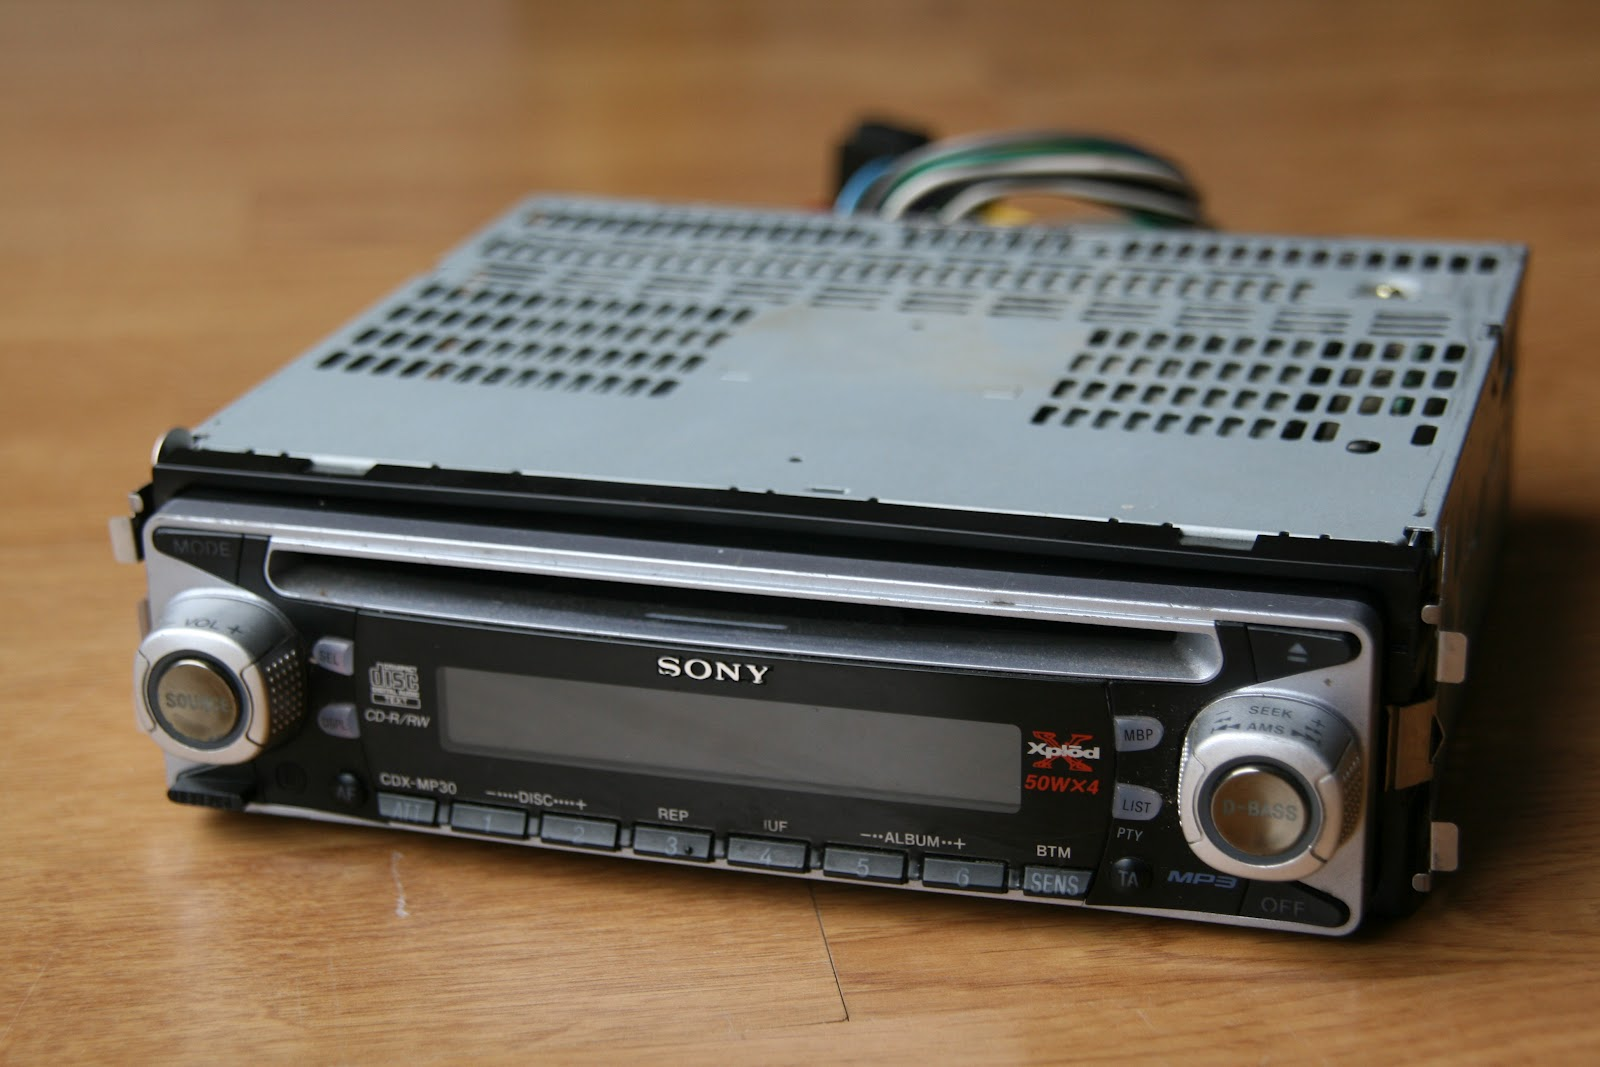 medium resolution of a sony car stereo for my cheap car project it s a 2002